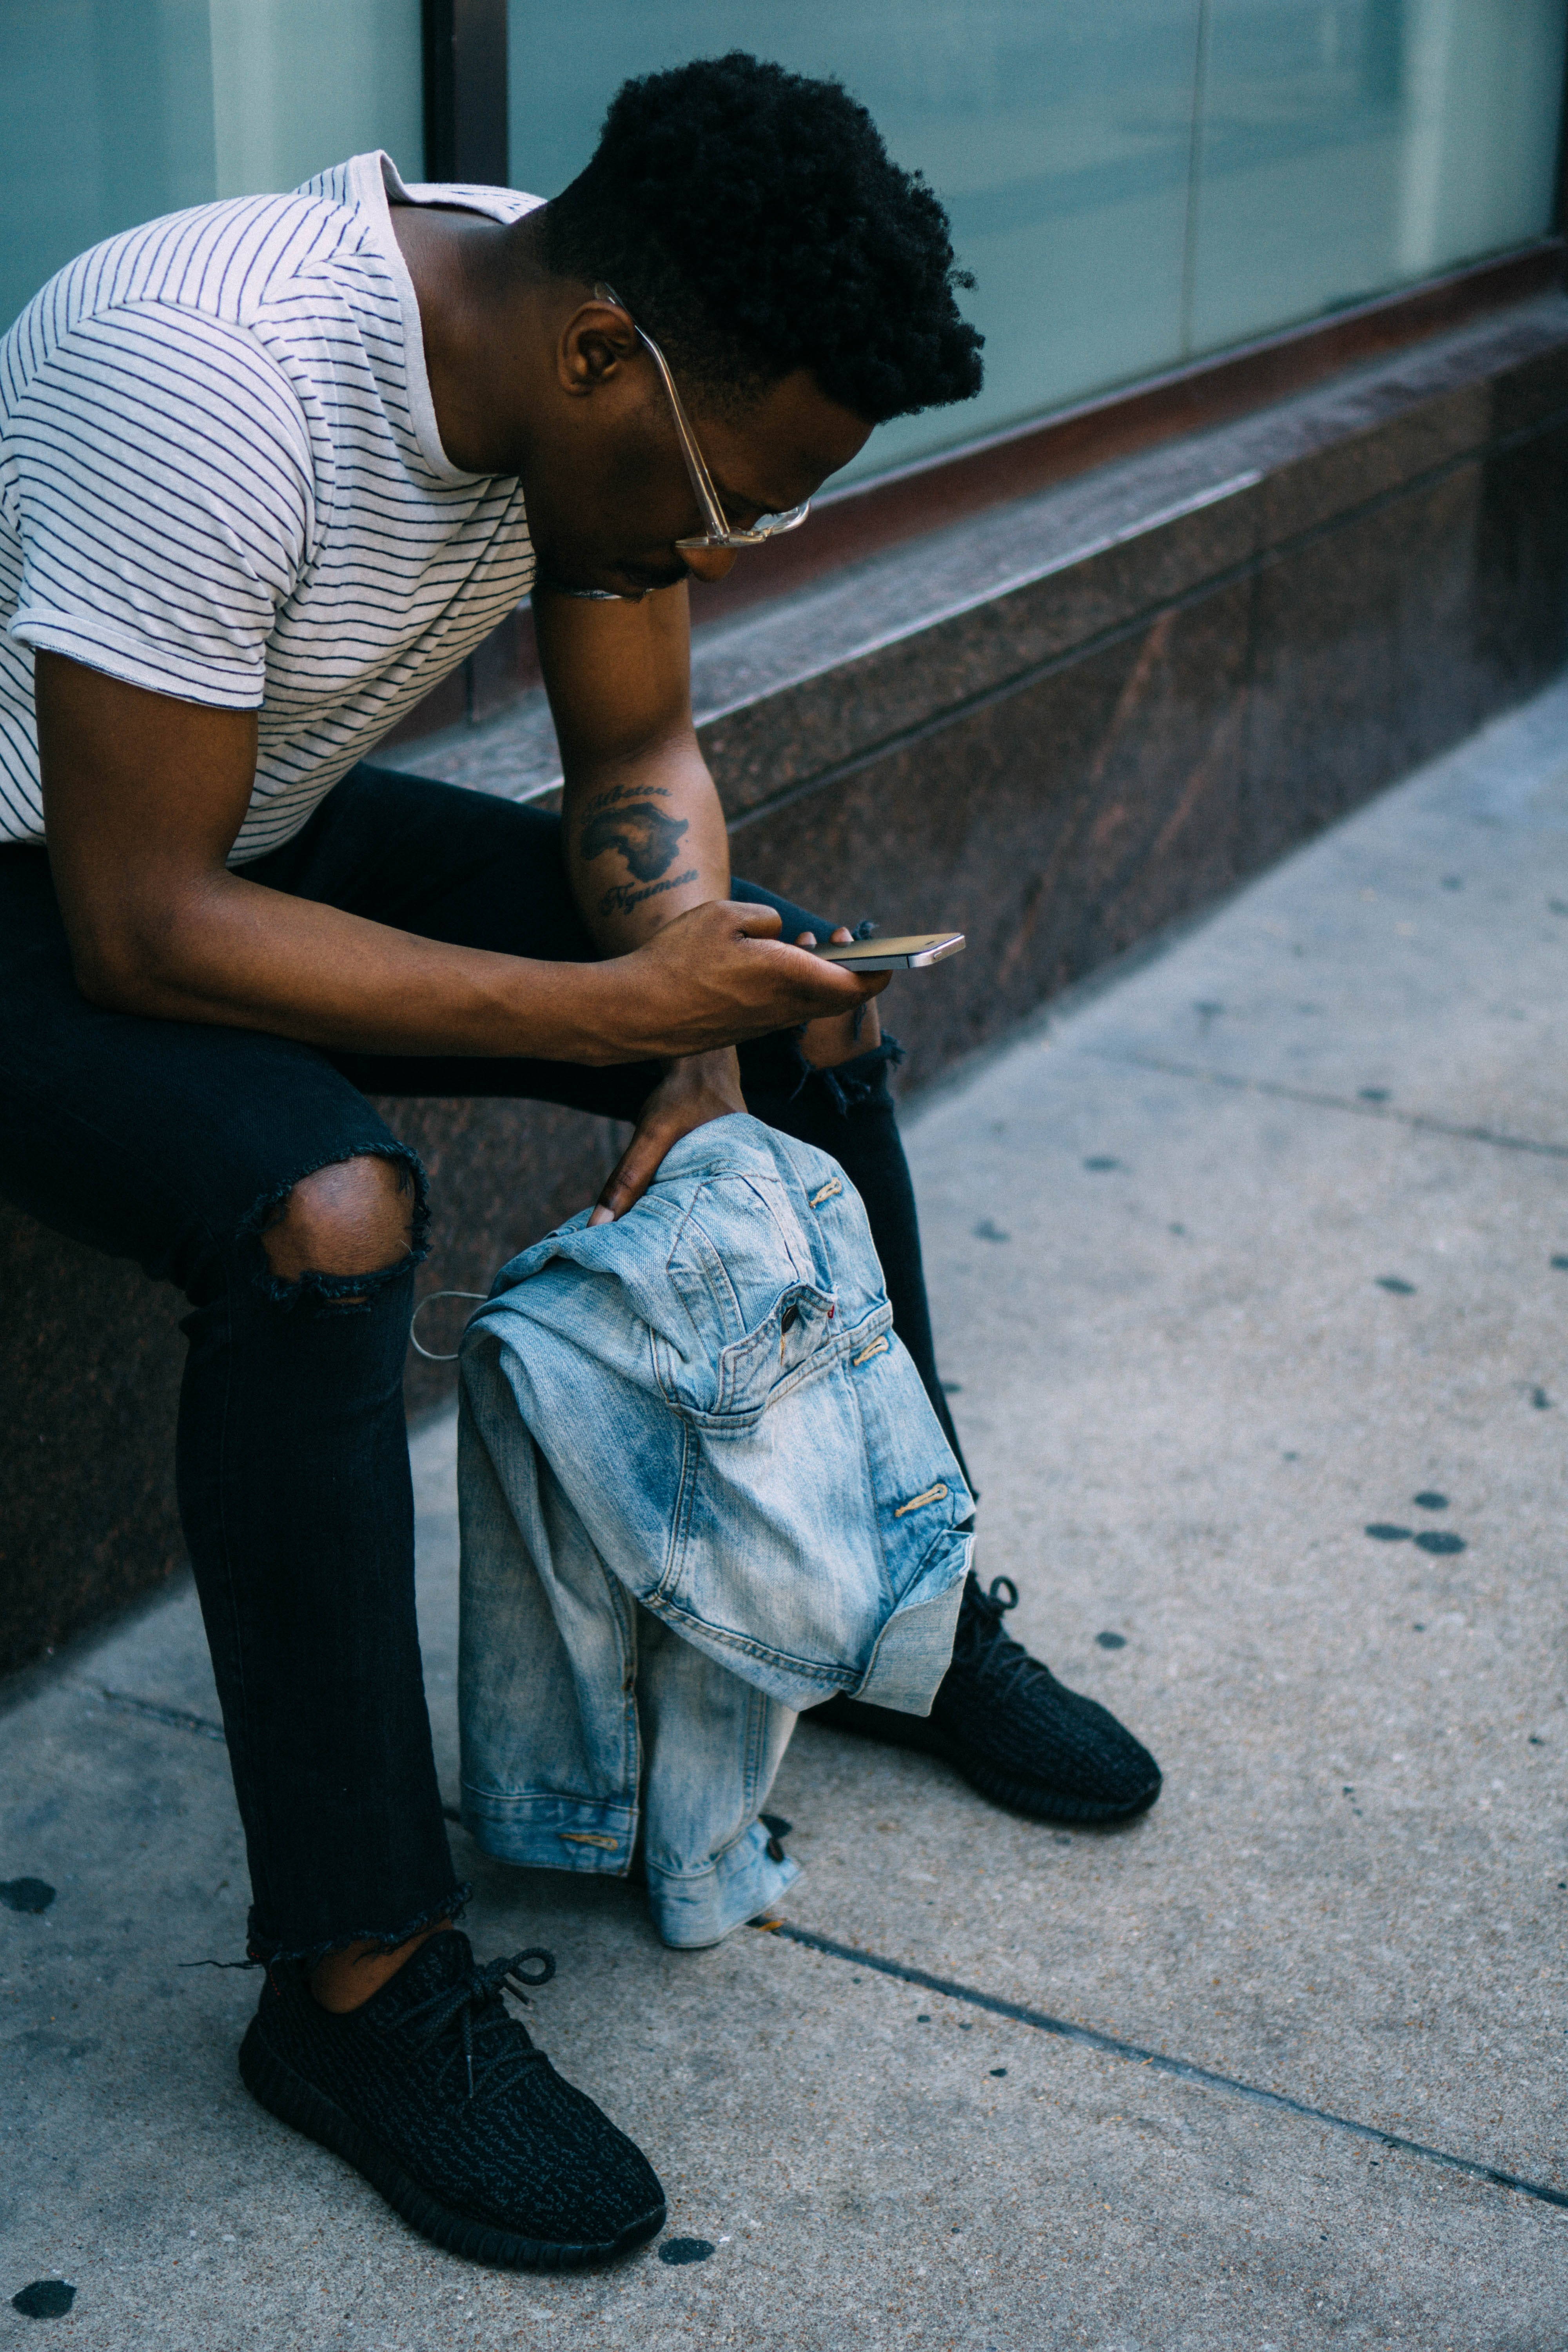 A man wearing a striped shirt and ripped jeans, sitting on a ledge, playing with his cellphone